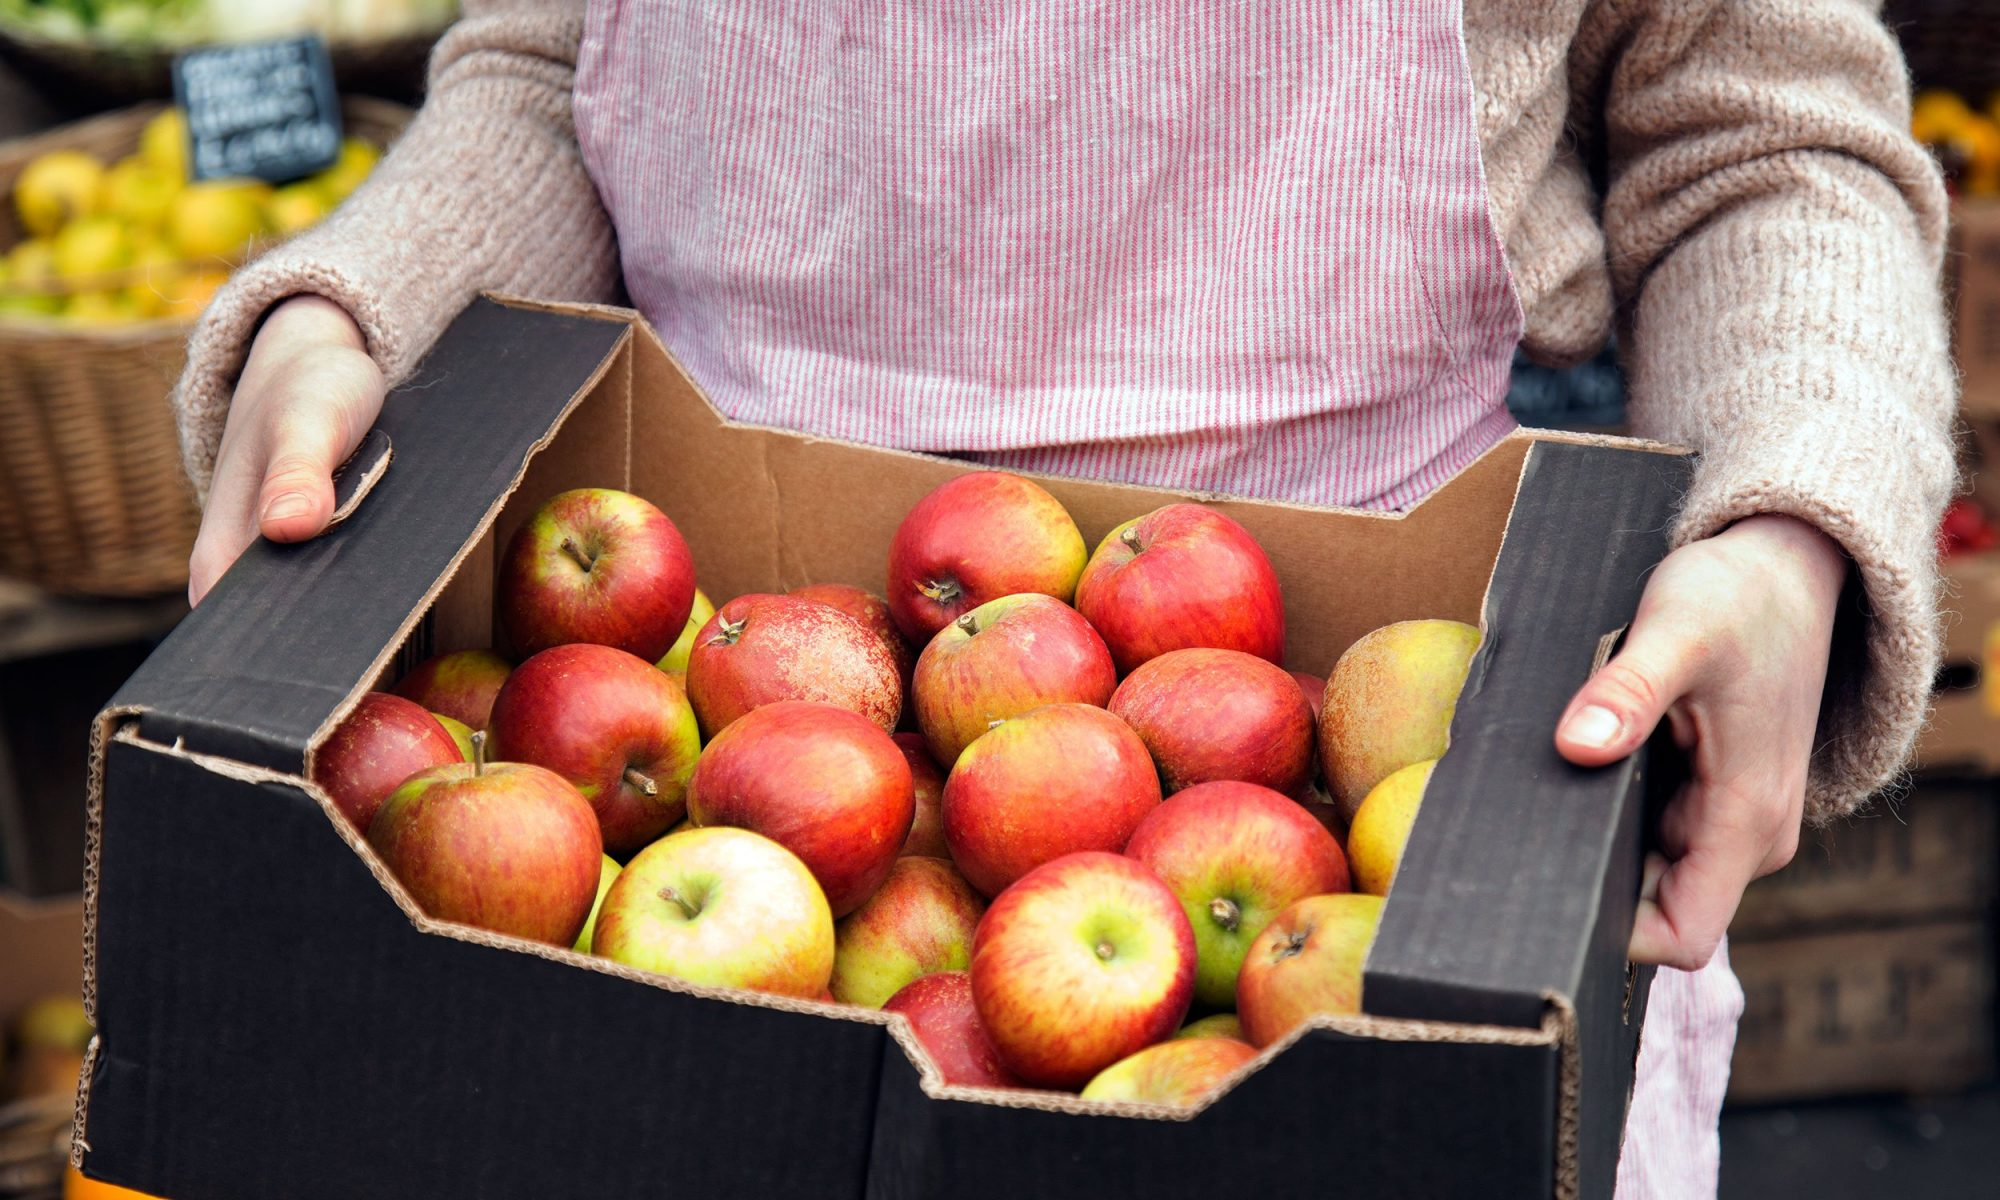 EC: Your Fresh Apples Are Probably a Year Old